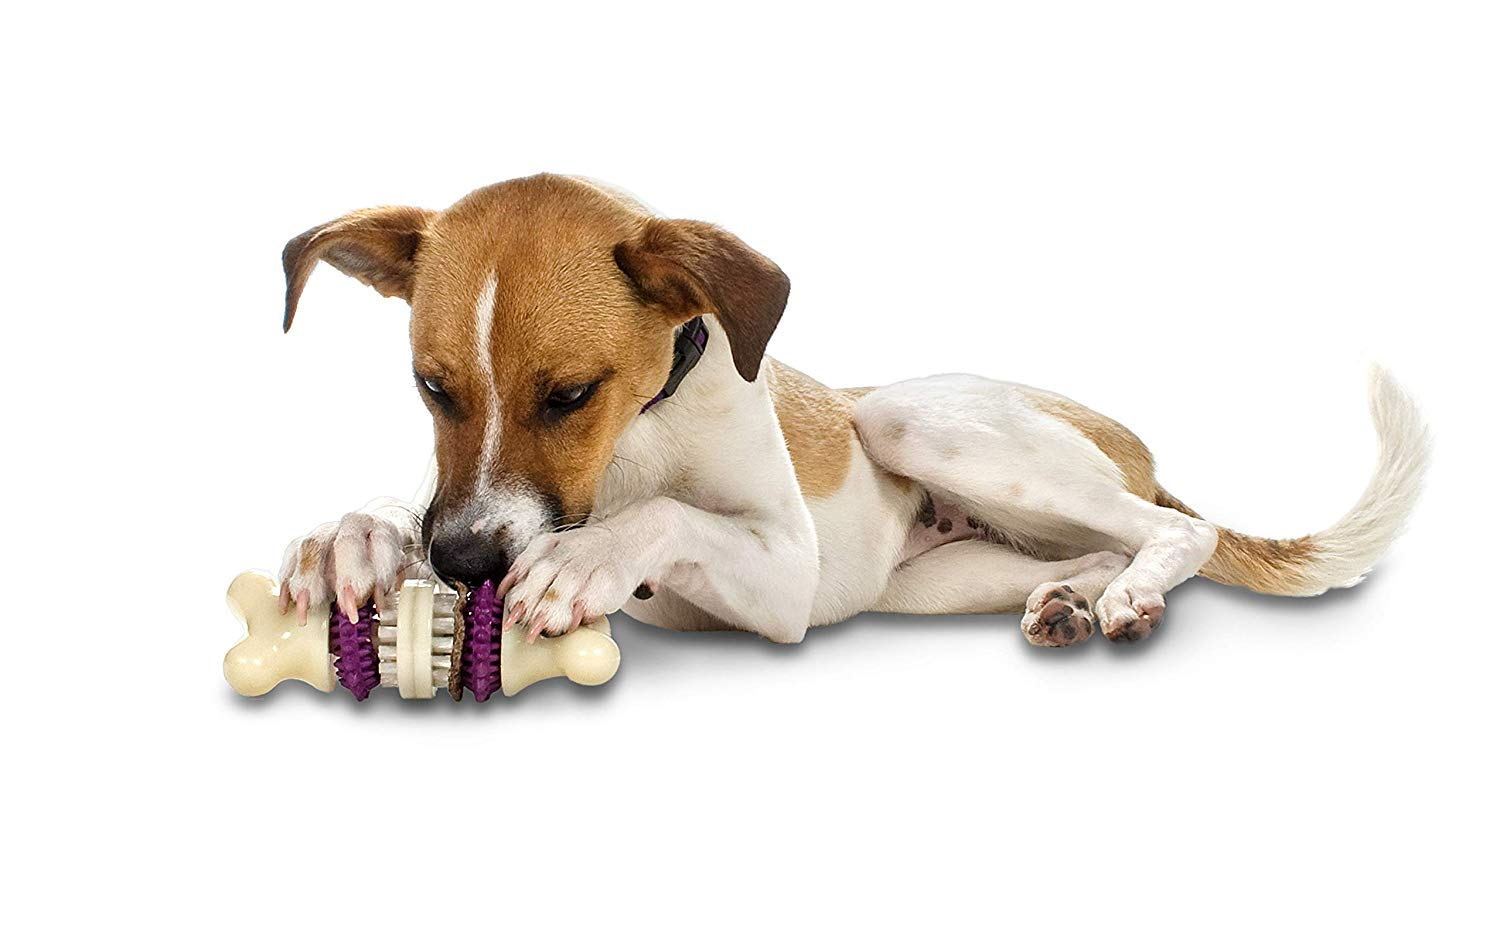 Items All Dog Owners Should Own as Recommended by Rescue Shelters